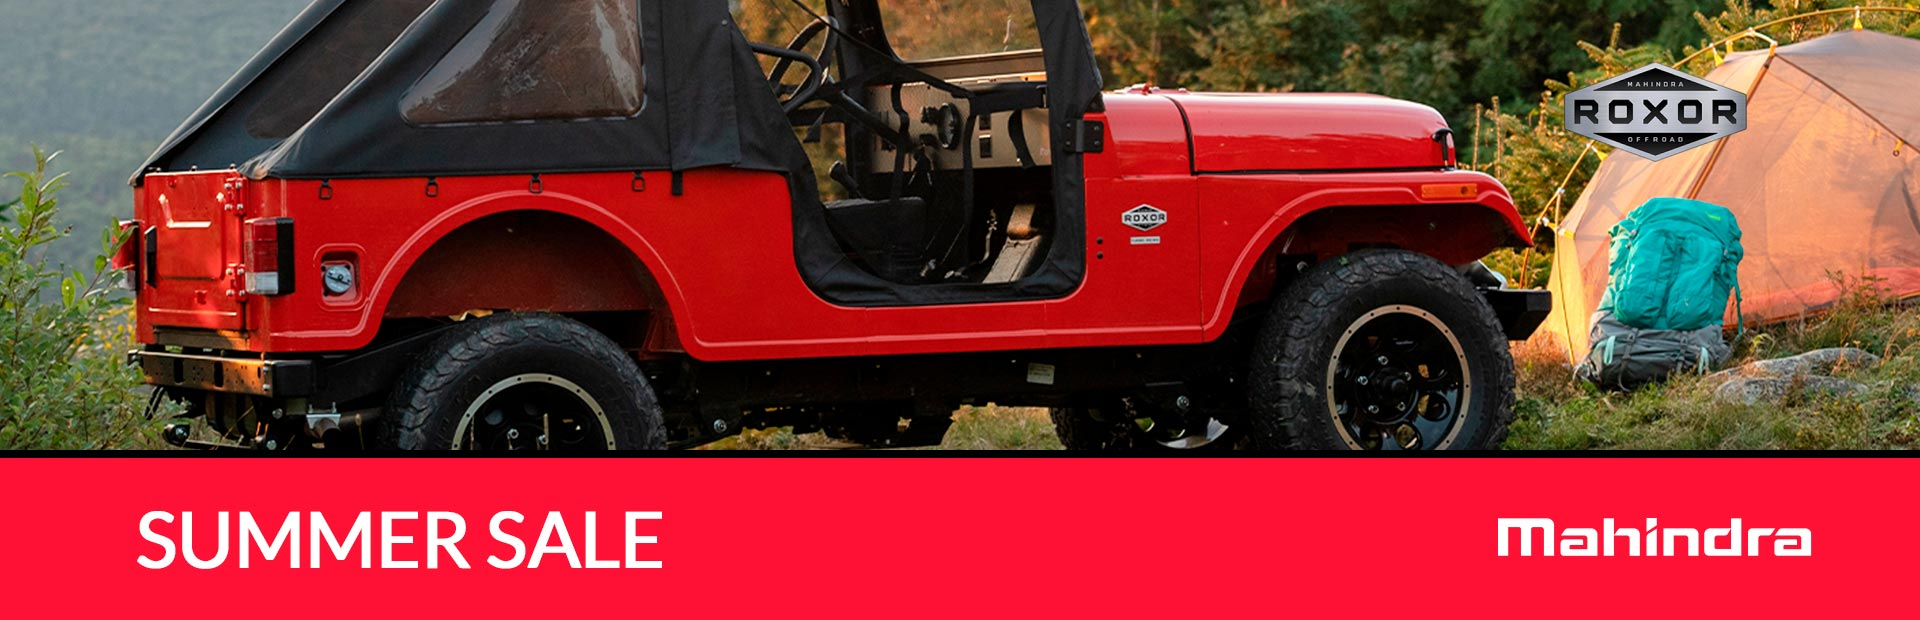 Mahindra: SUMMER SALE